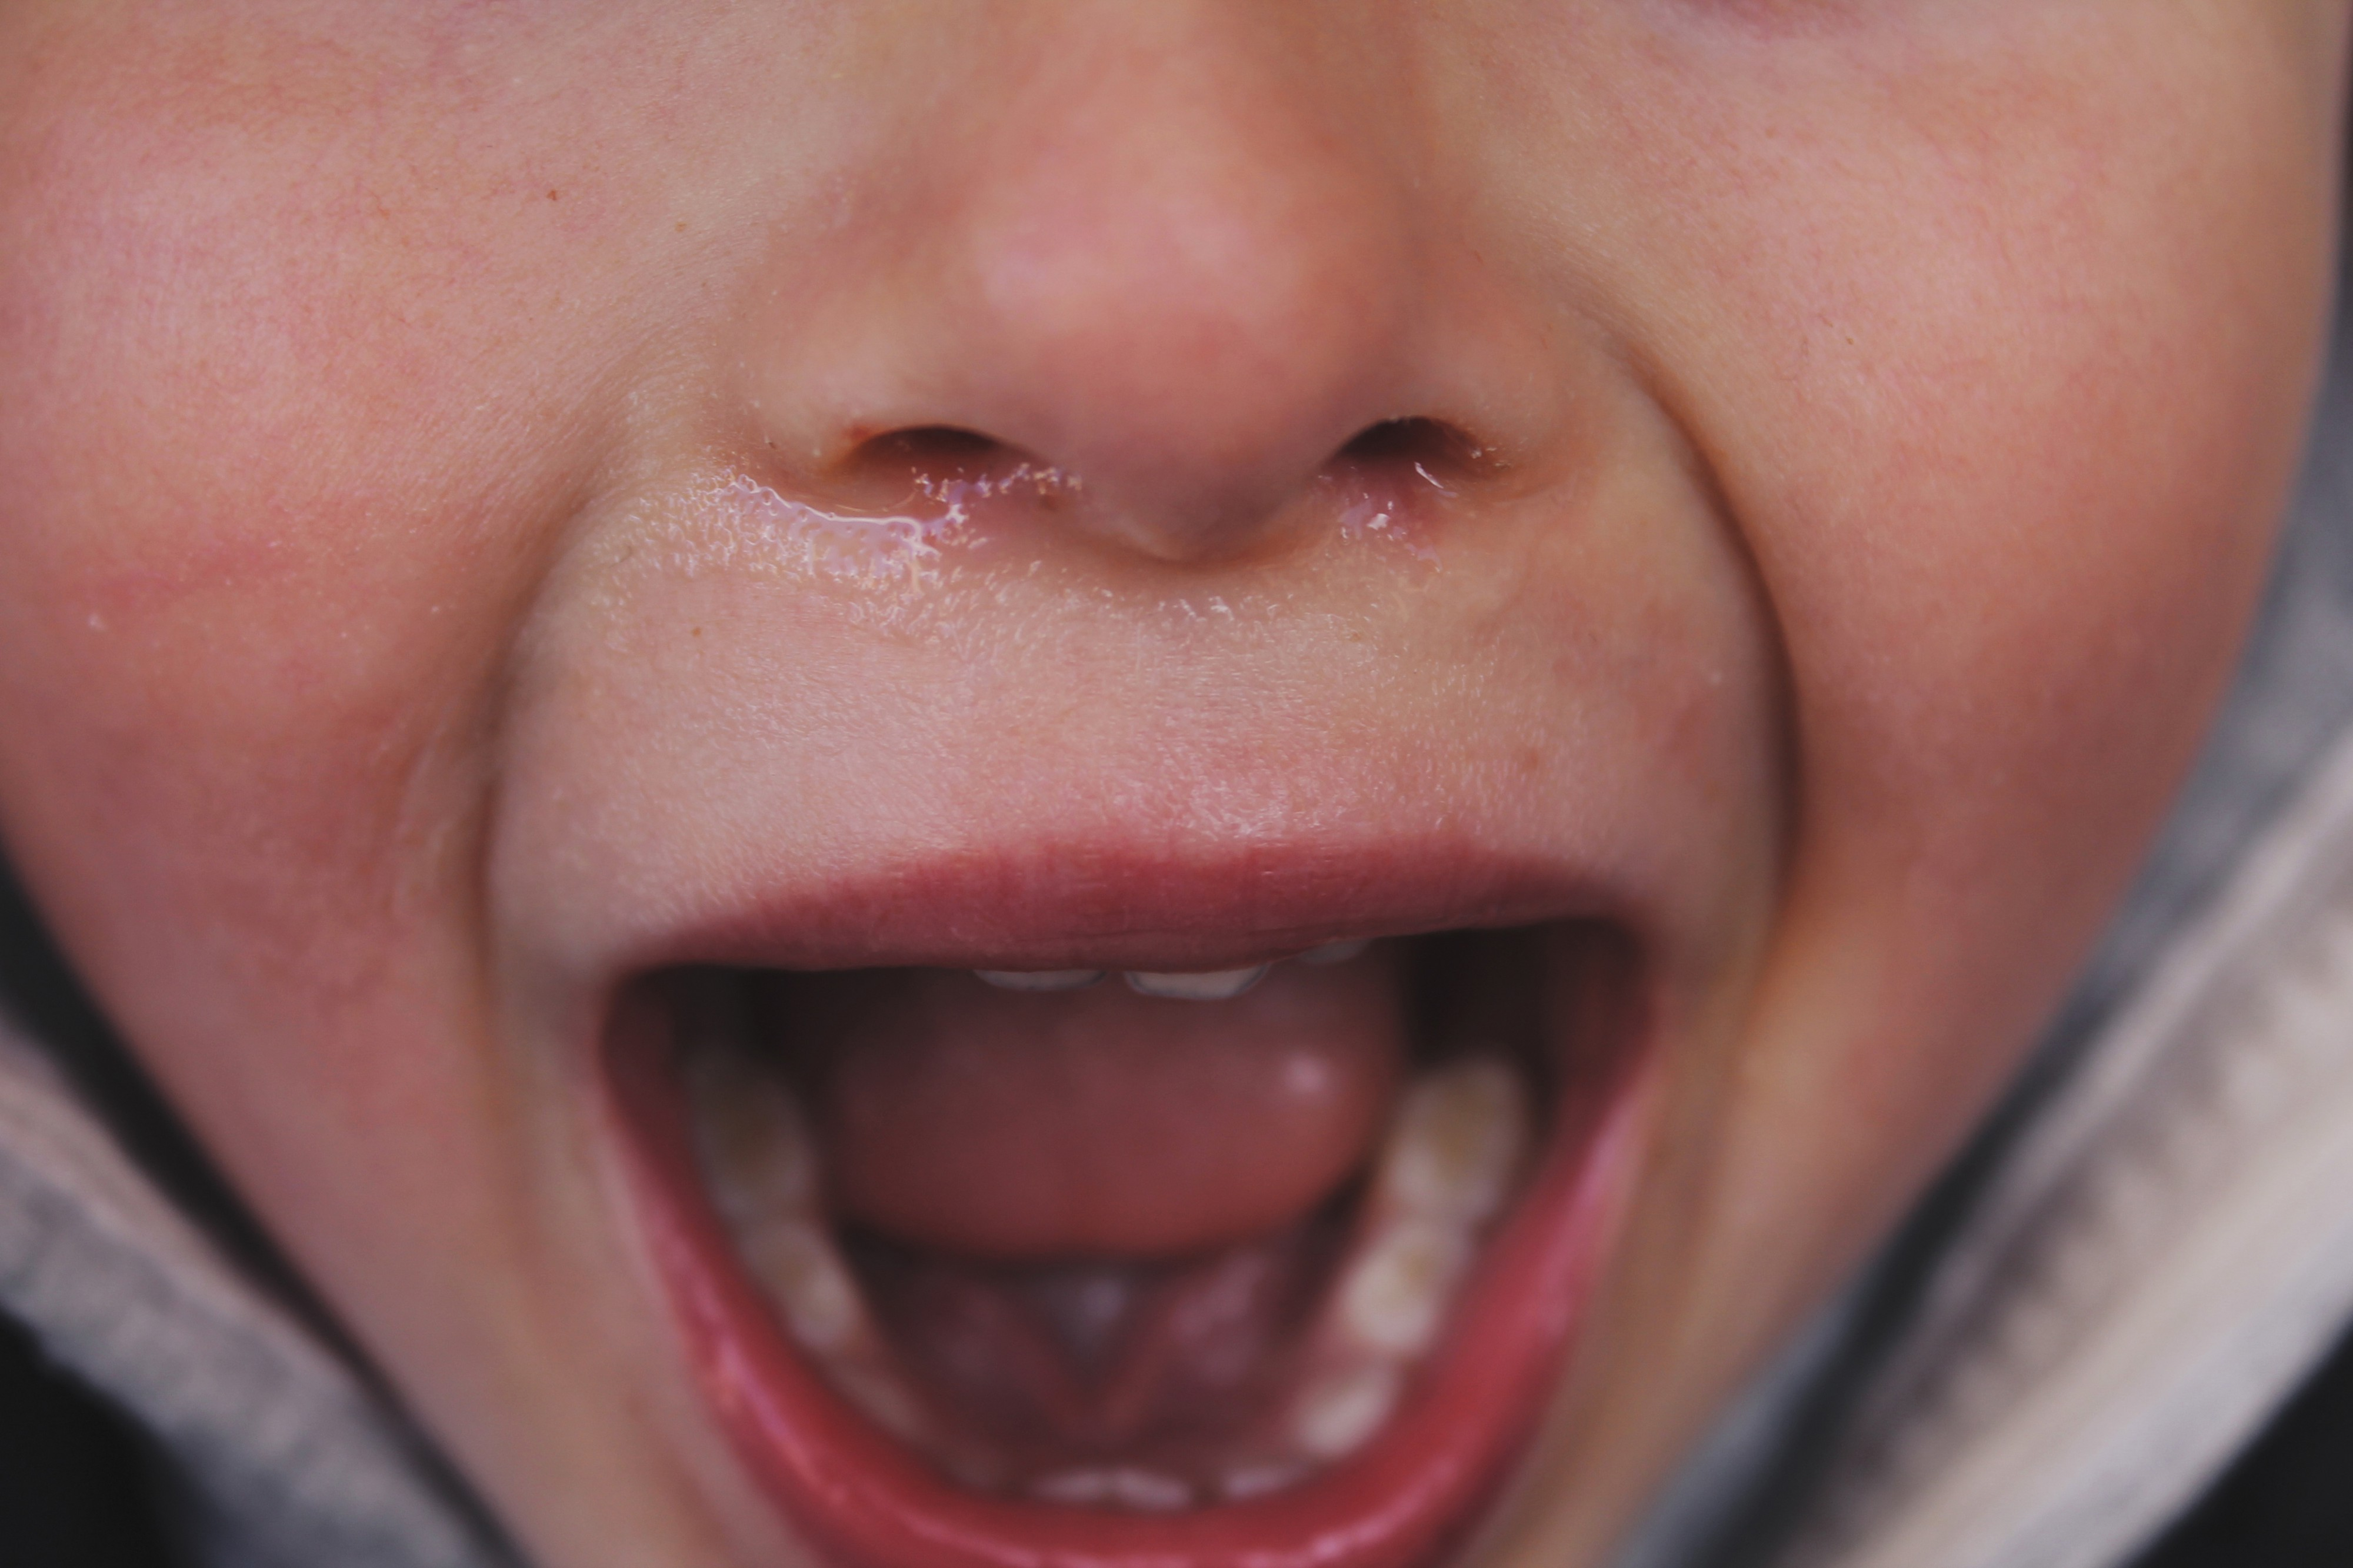 A close up of a yelling child with snot coming from nose.